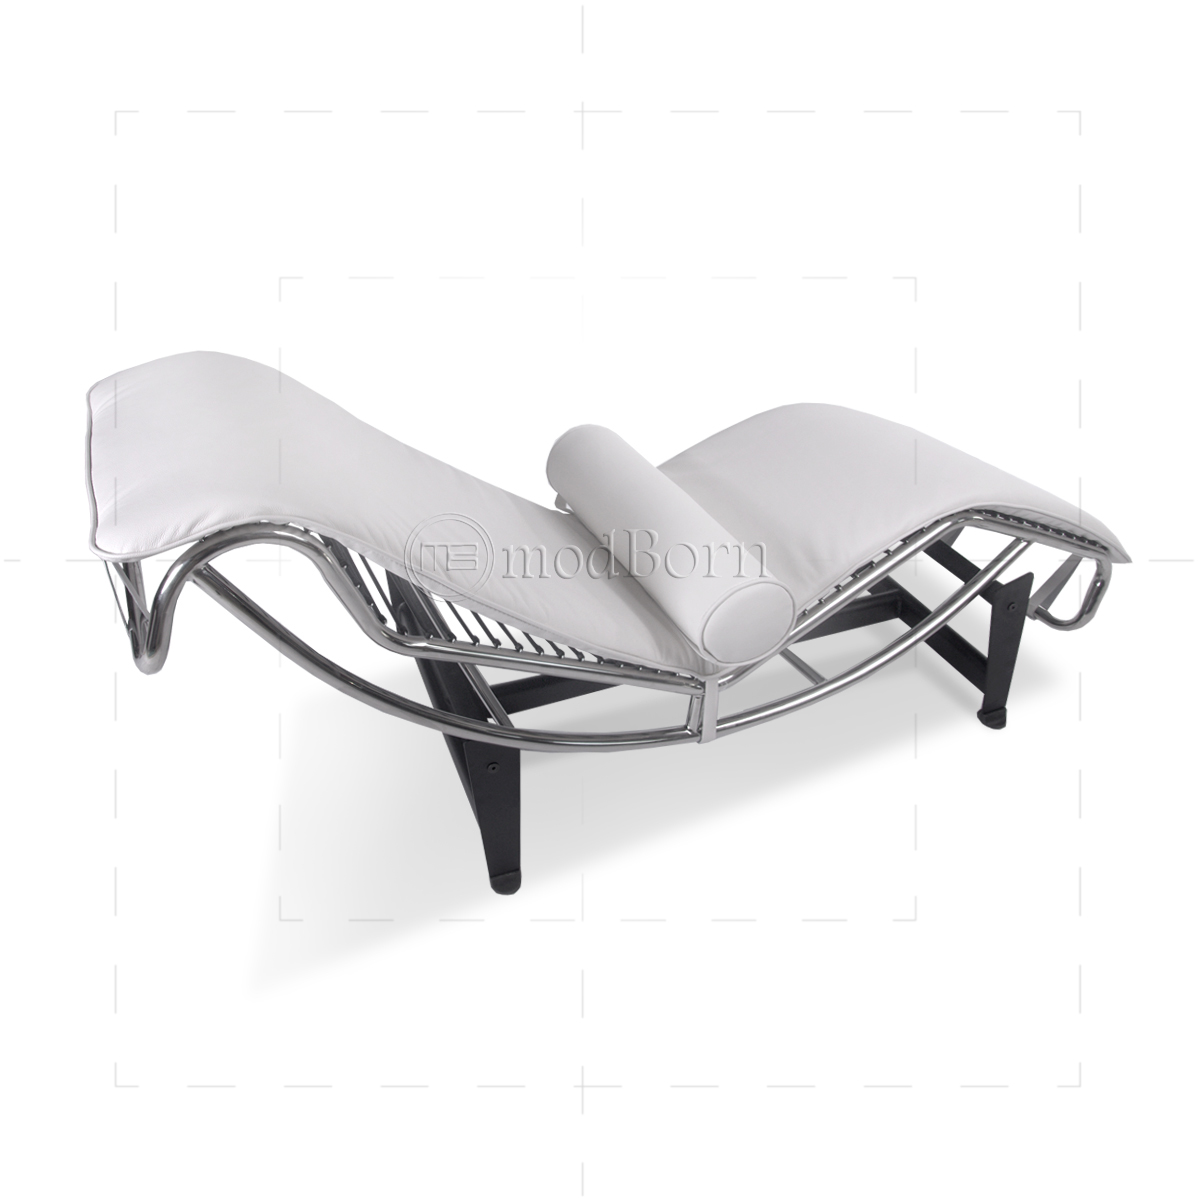 le corbusier style lc4 chaise longue white leather replica. Black Bedroom Furniture Sets. Home Design Ideas